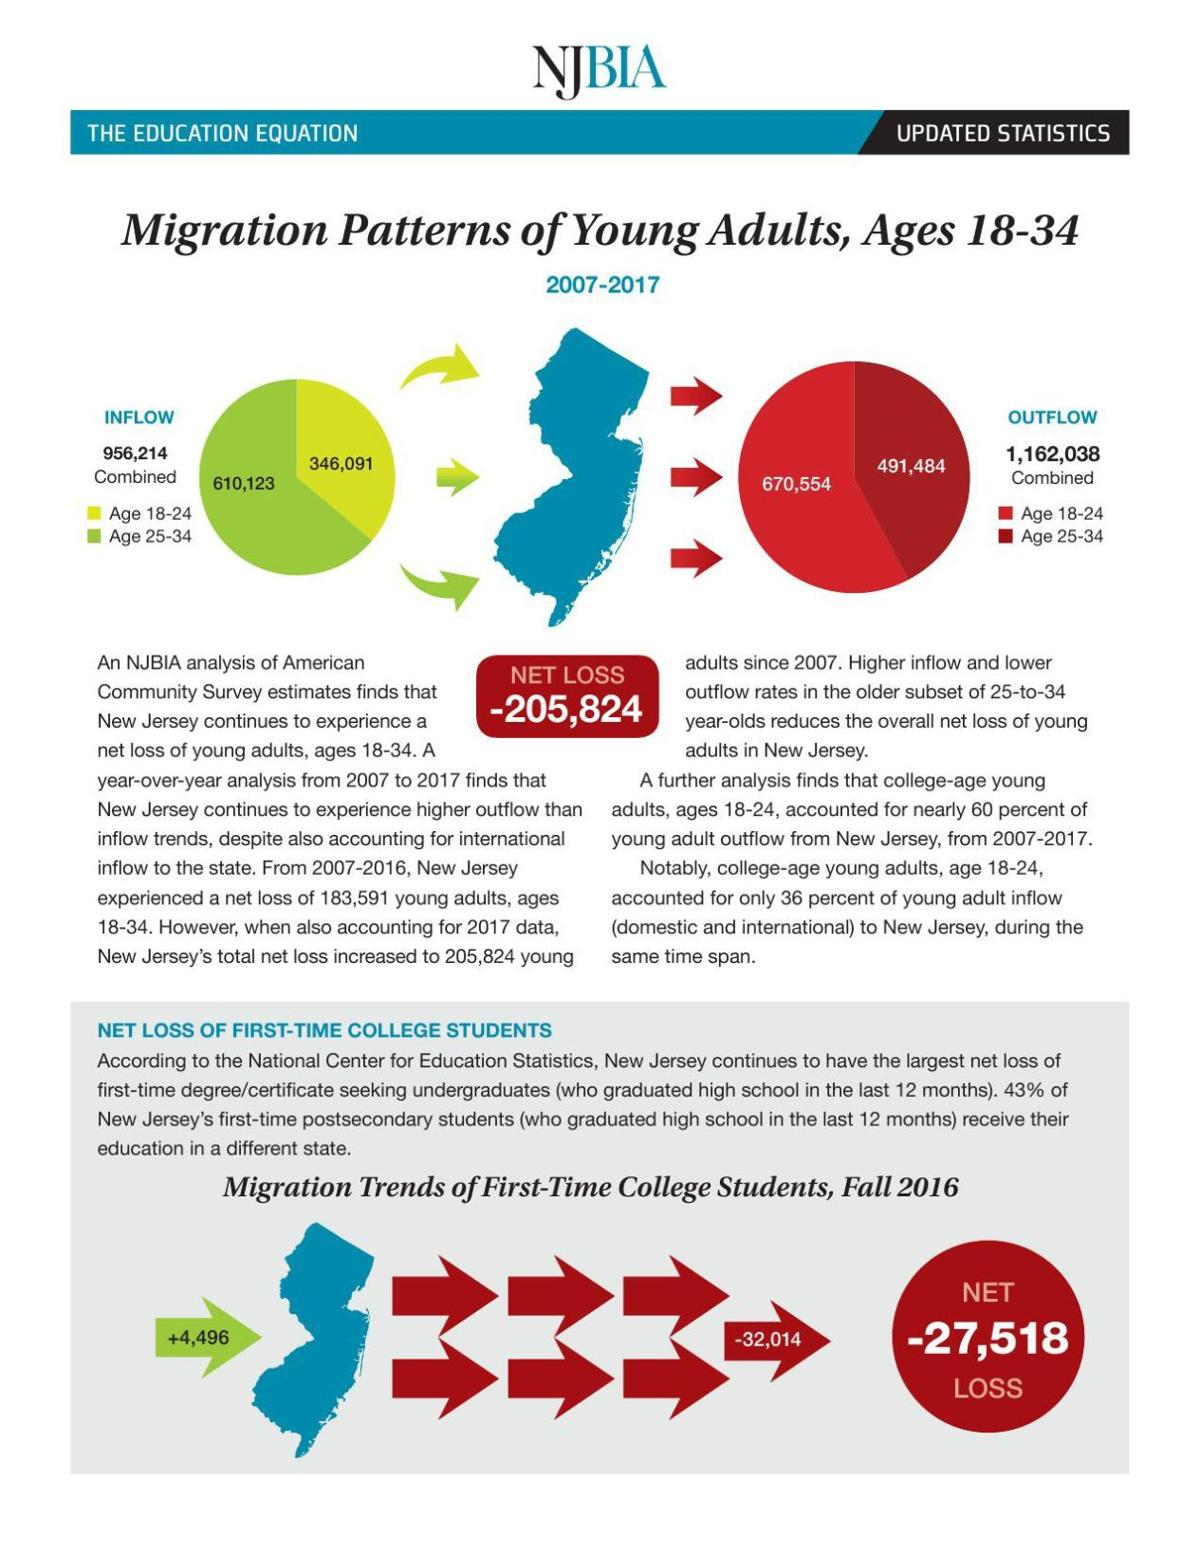 Migration Patterns of Young Adults, Ages 18-34